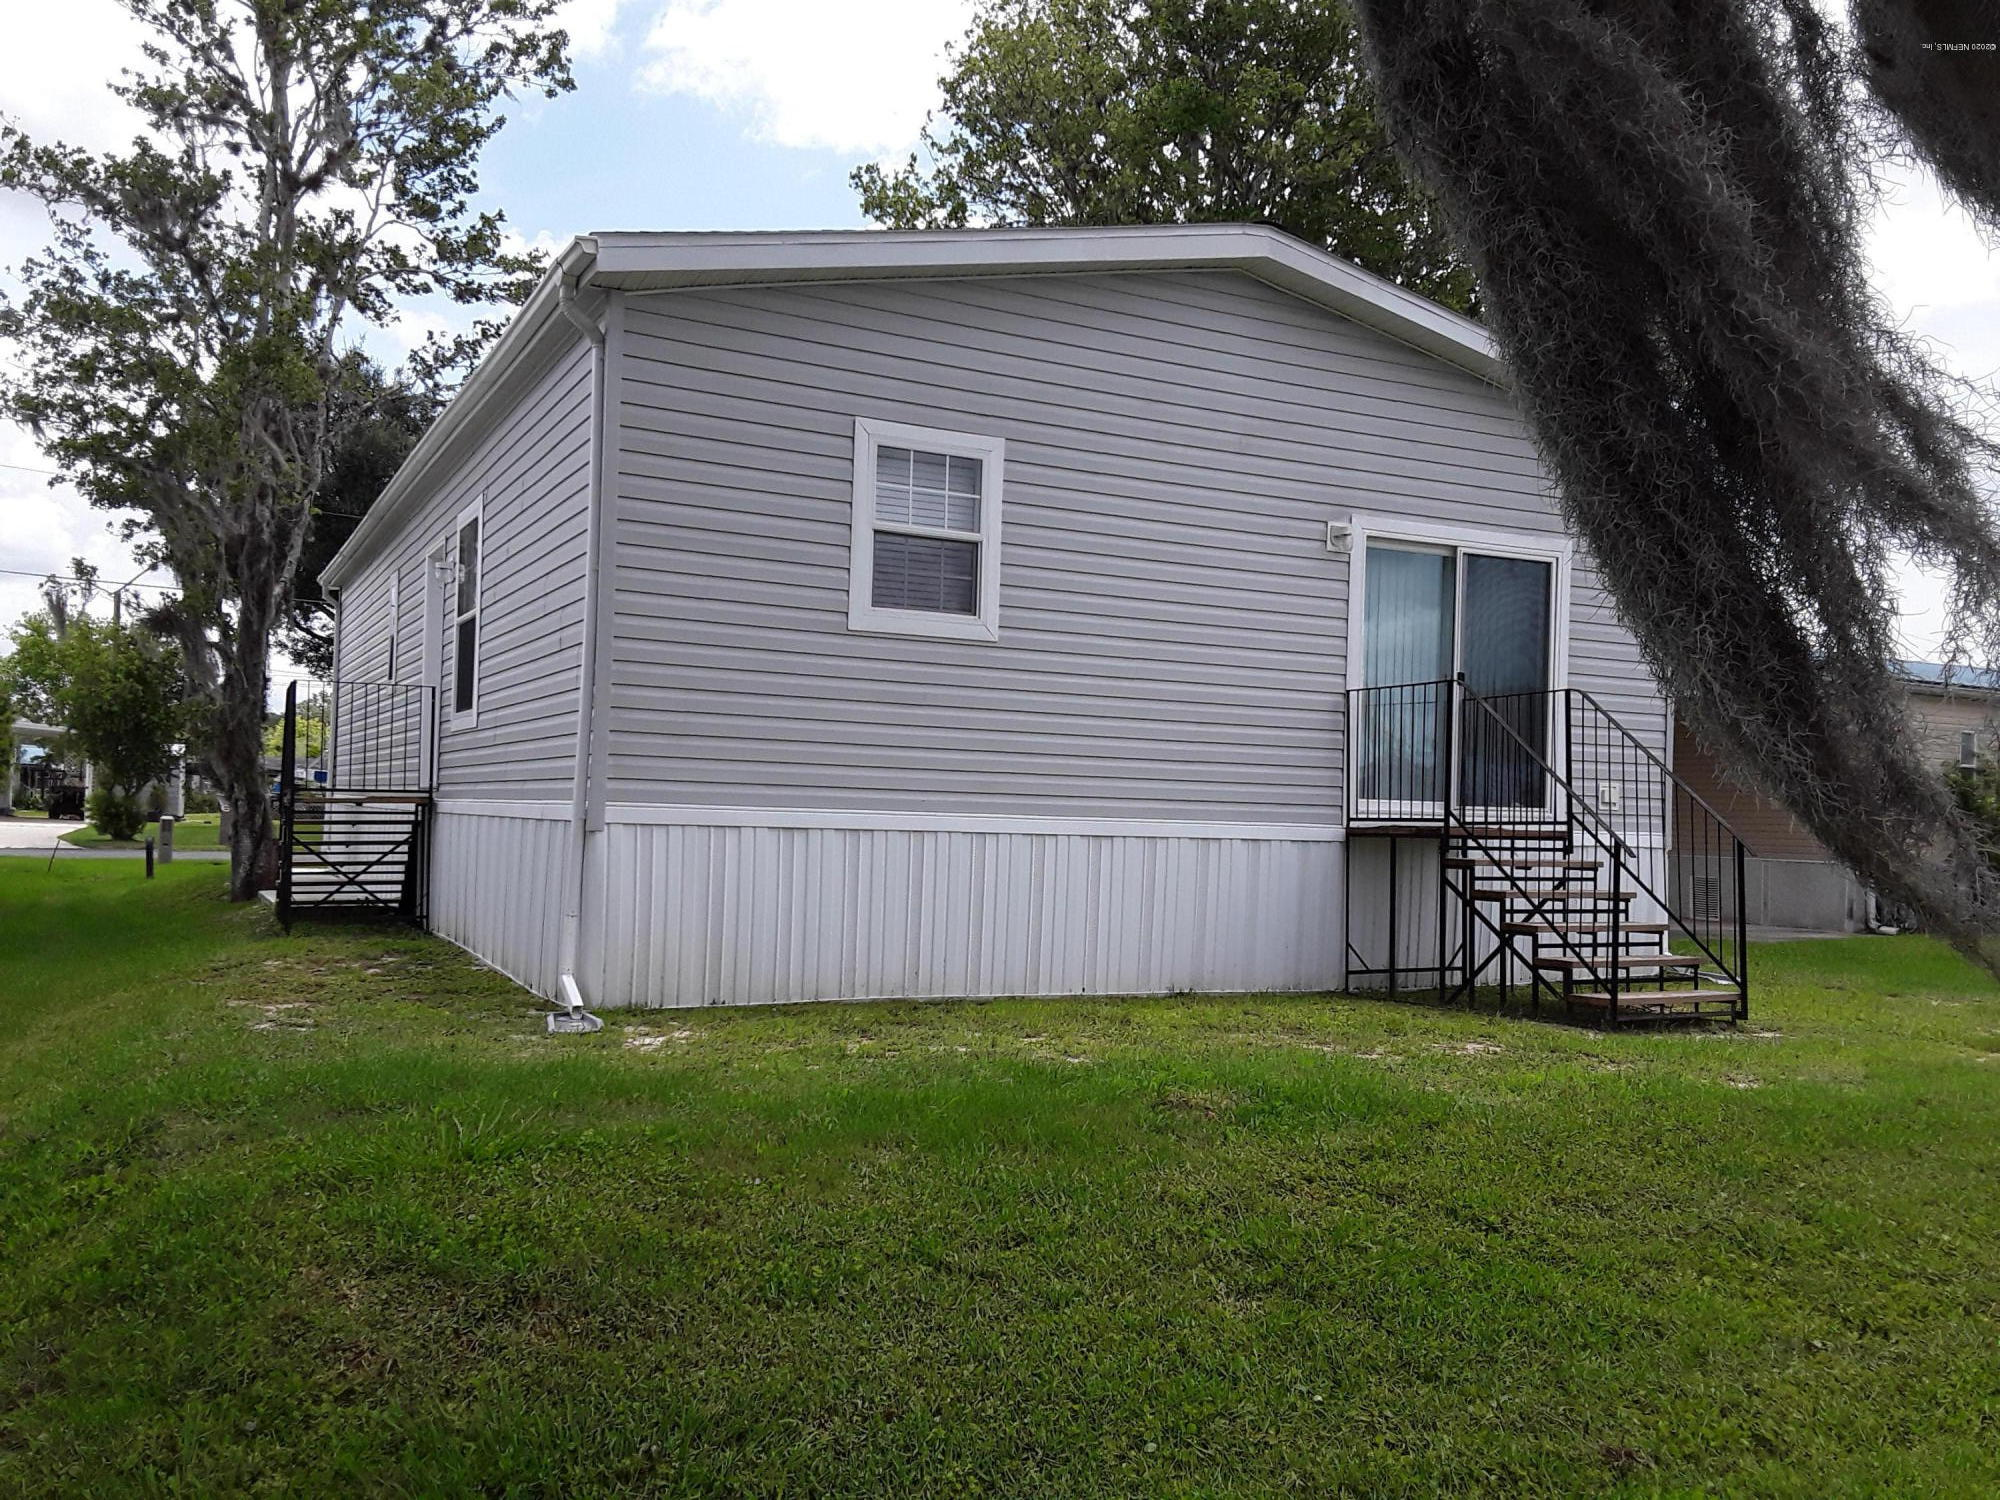 109 HAPPINESS, WELAKA, FLORIDA 32193, 3 Bedrooms Bedrooms, ,2 BathroomsBathrooms,Residential,For sale,HAPPINESS,1056990